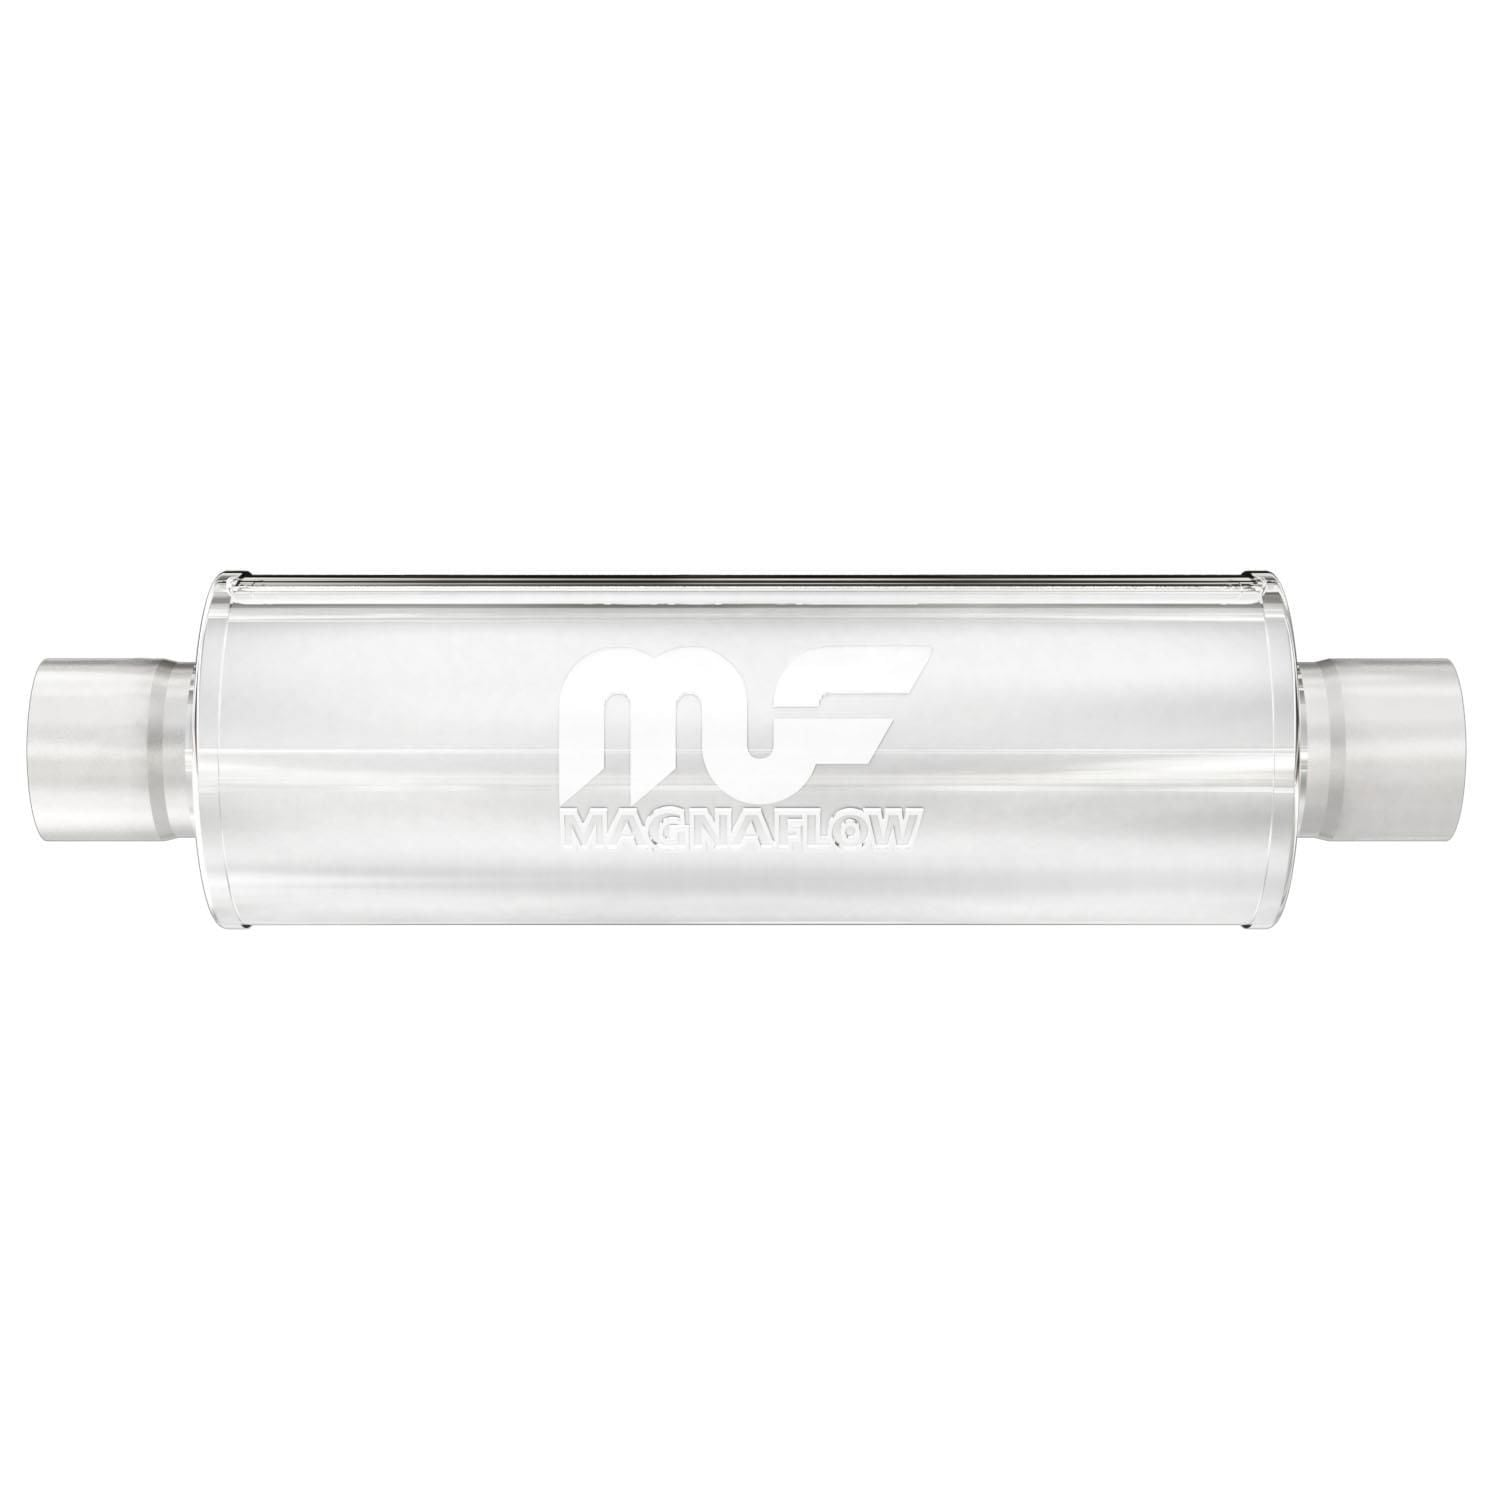 magnaflow exhaust products 10416 2 1 2in center inlet x 2 1 2 center outlet exhaust muffler